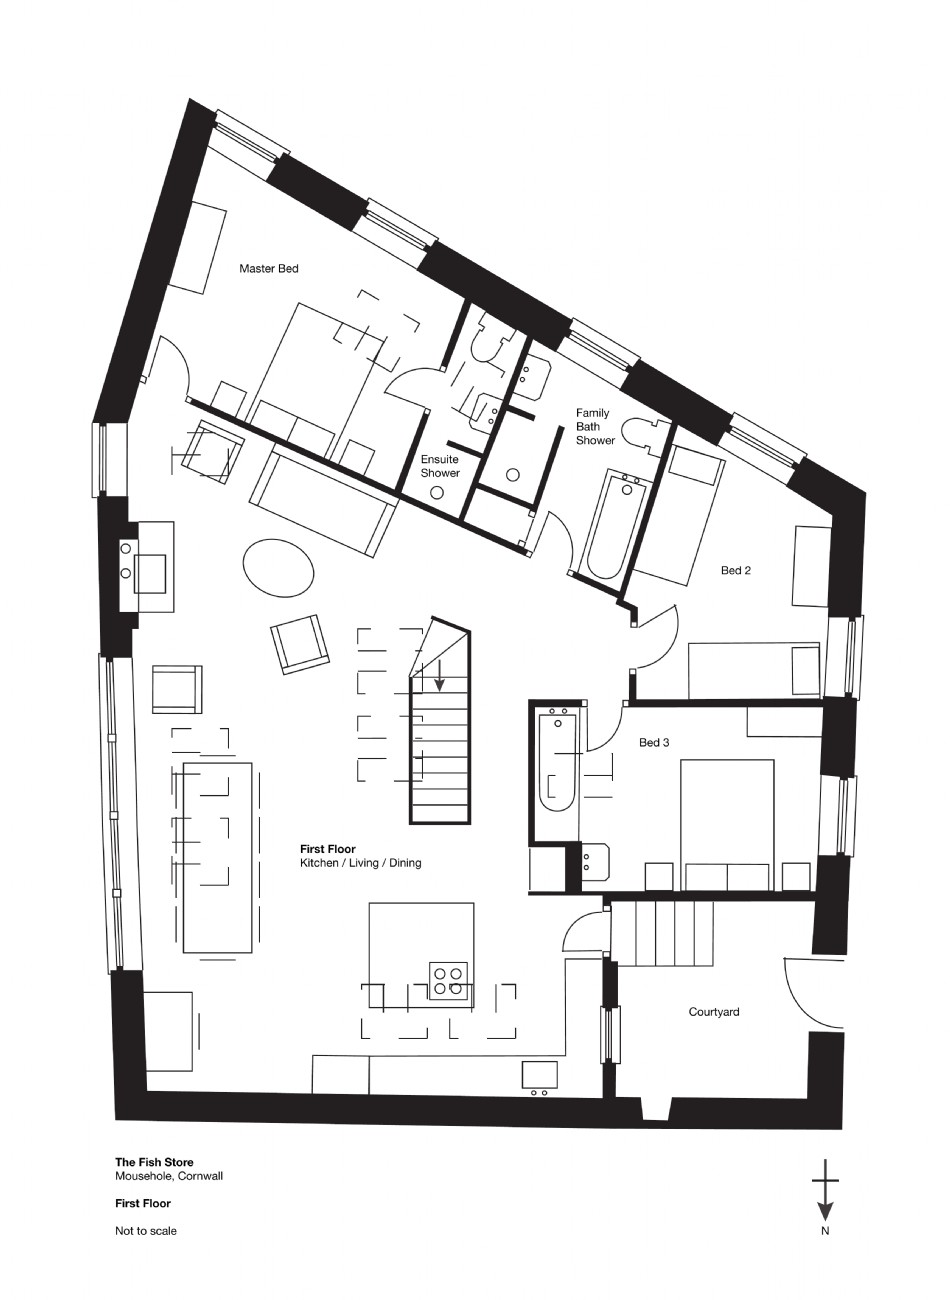 Floor plan of The Fish Store